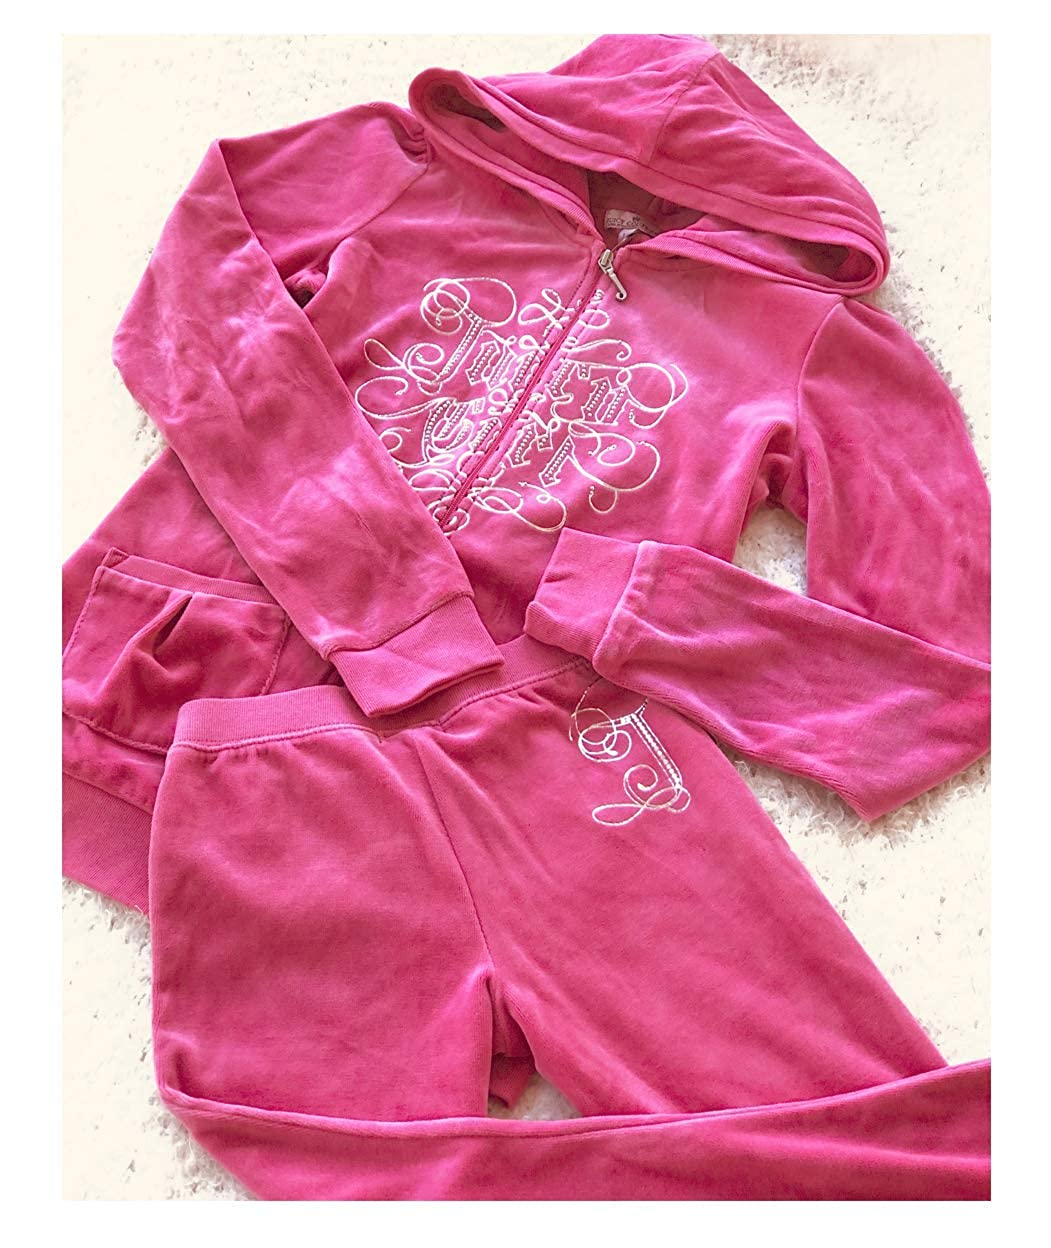 d5fb92b085 Amazon.com: Juicy Couture Girls Pink Velour Track Jacket and Pants ...